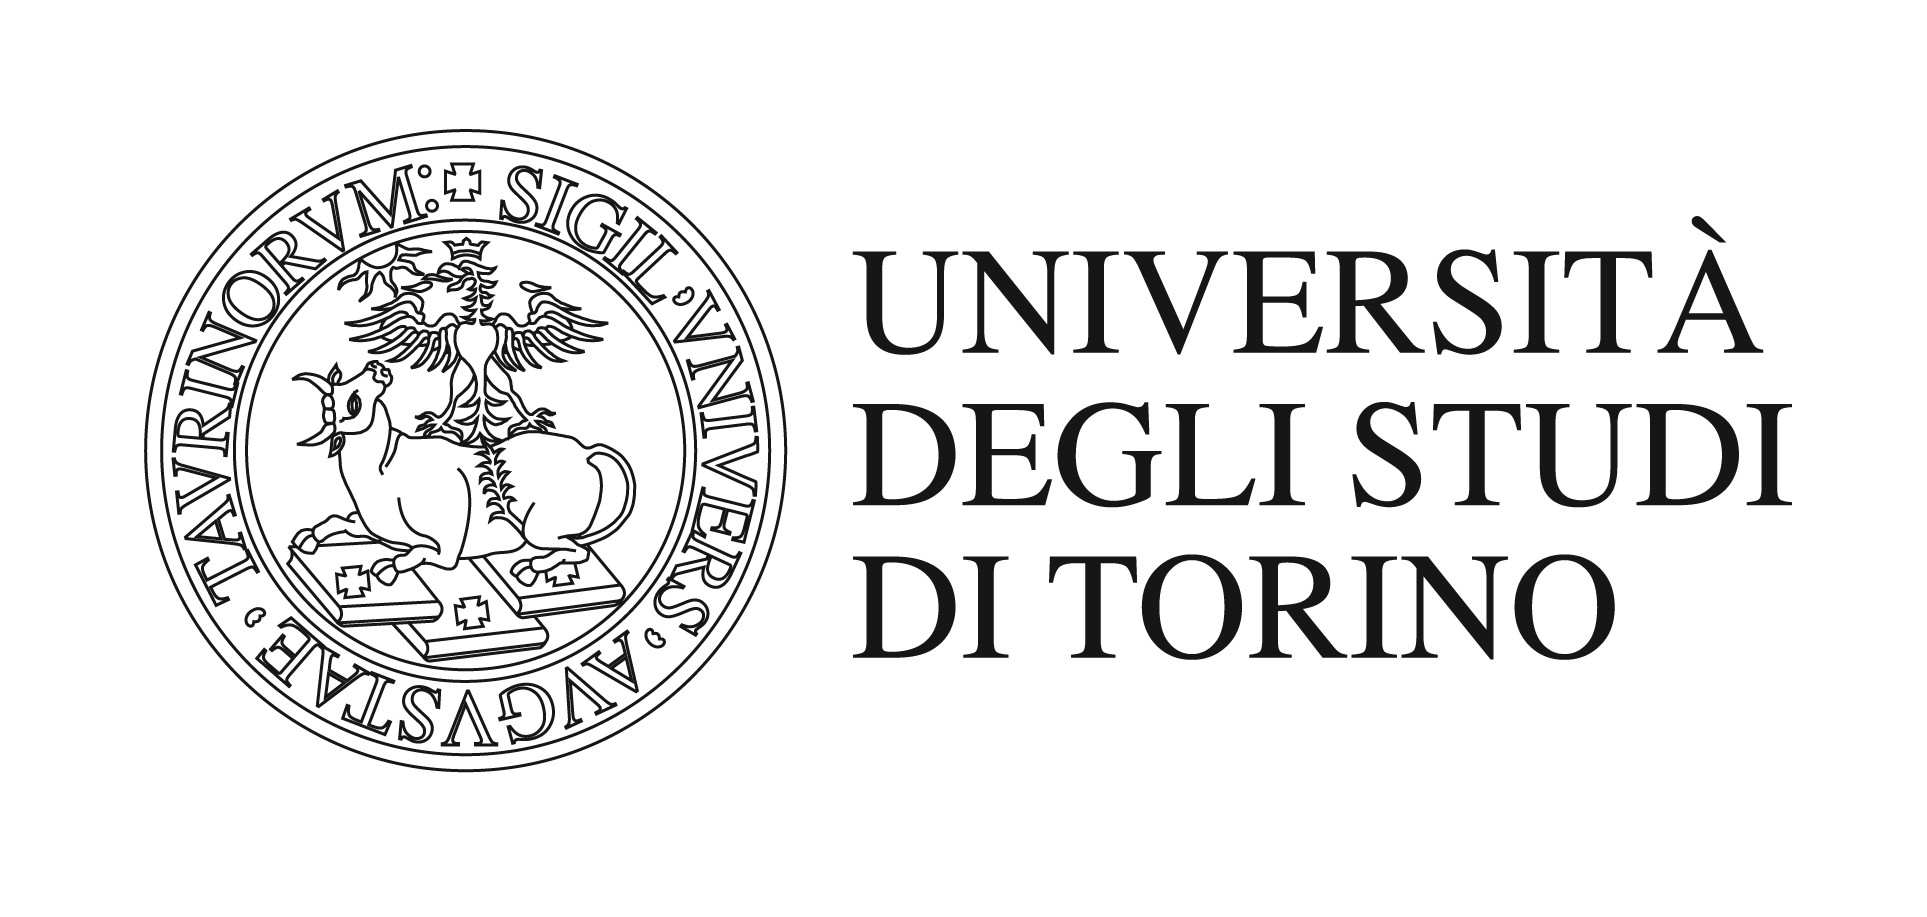 News and upcoming initiatives (September-Dec. 2018) for companies from the University of Turin